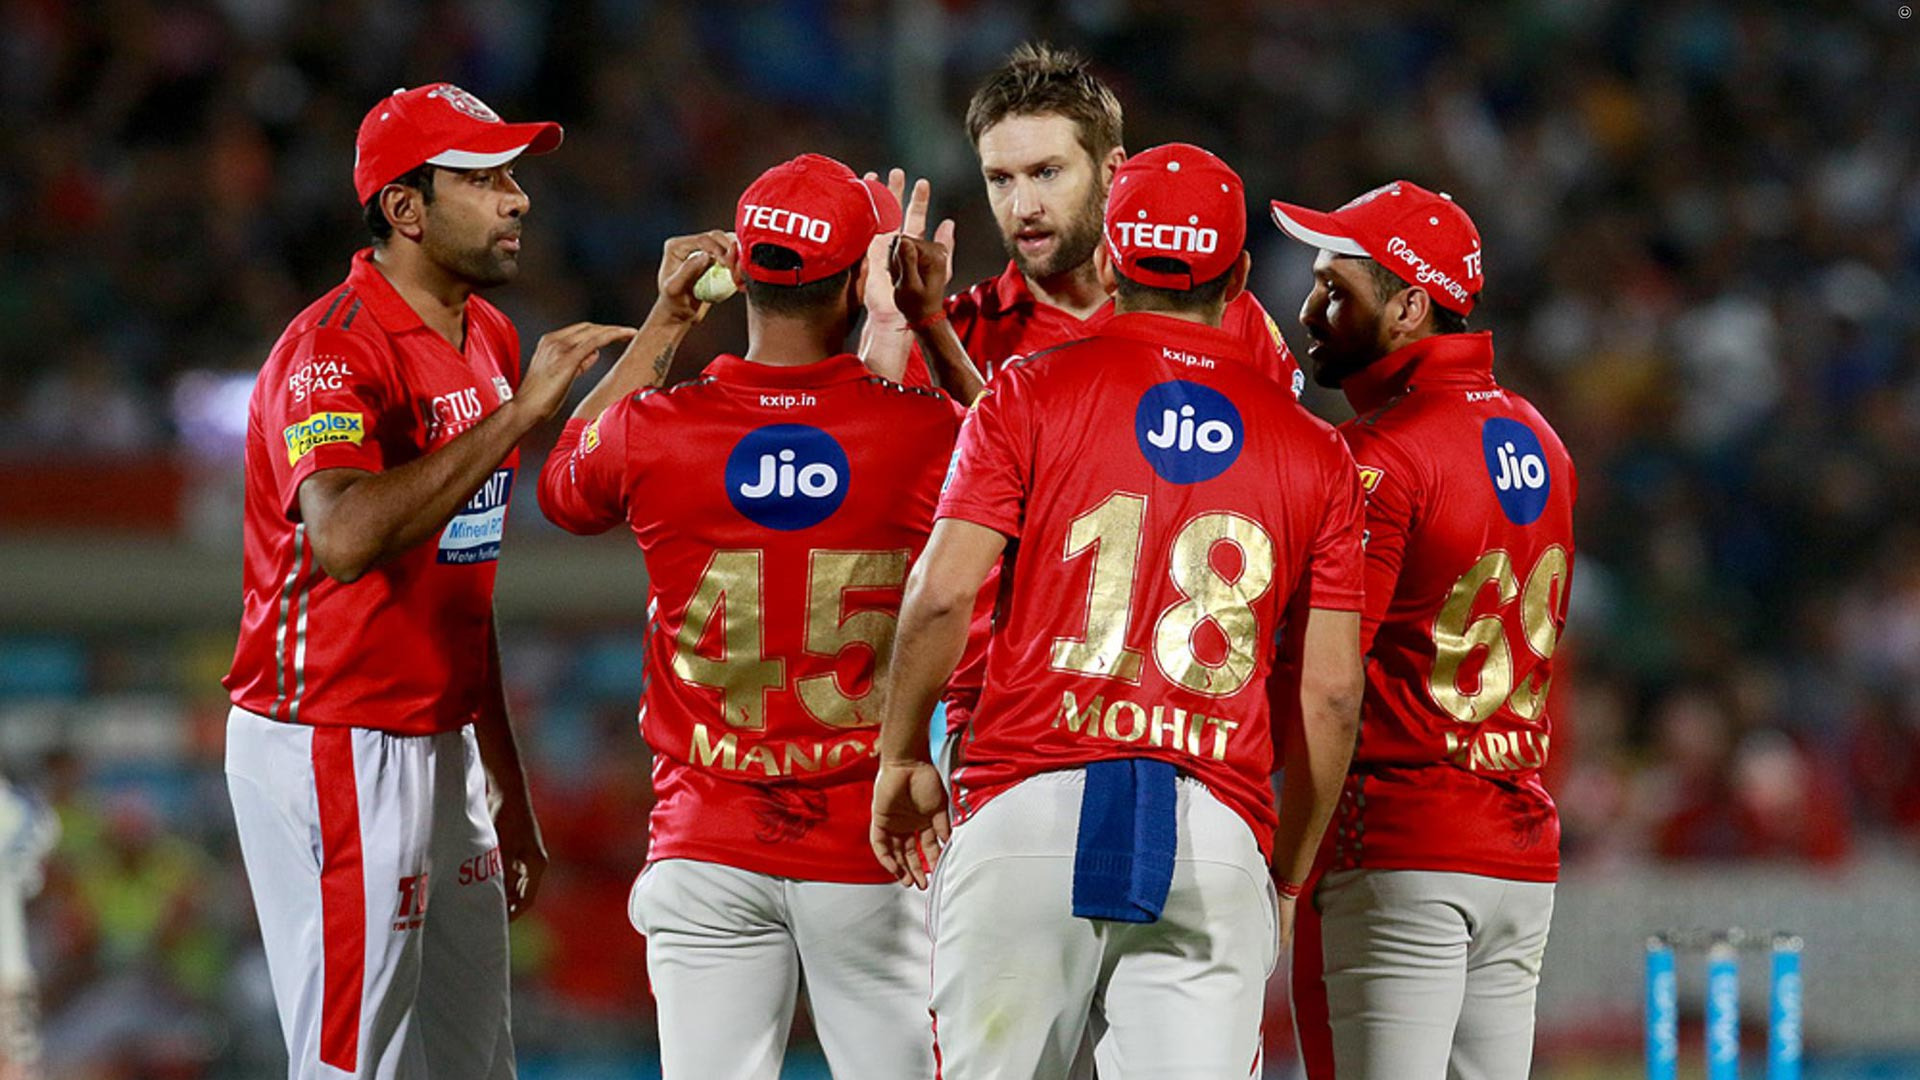 The Board of Control for Cricket in India (BCCI) has written a letter to Kings XI Punjab